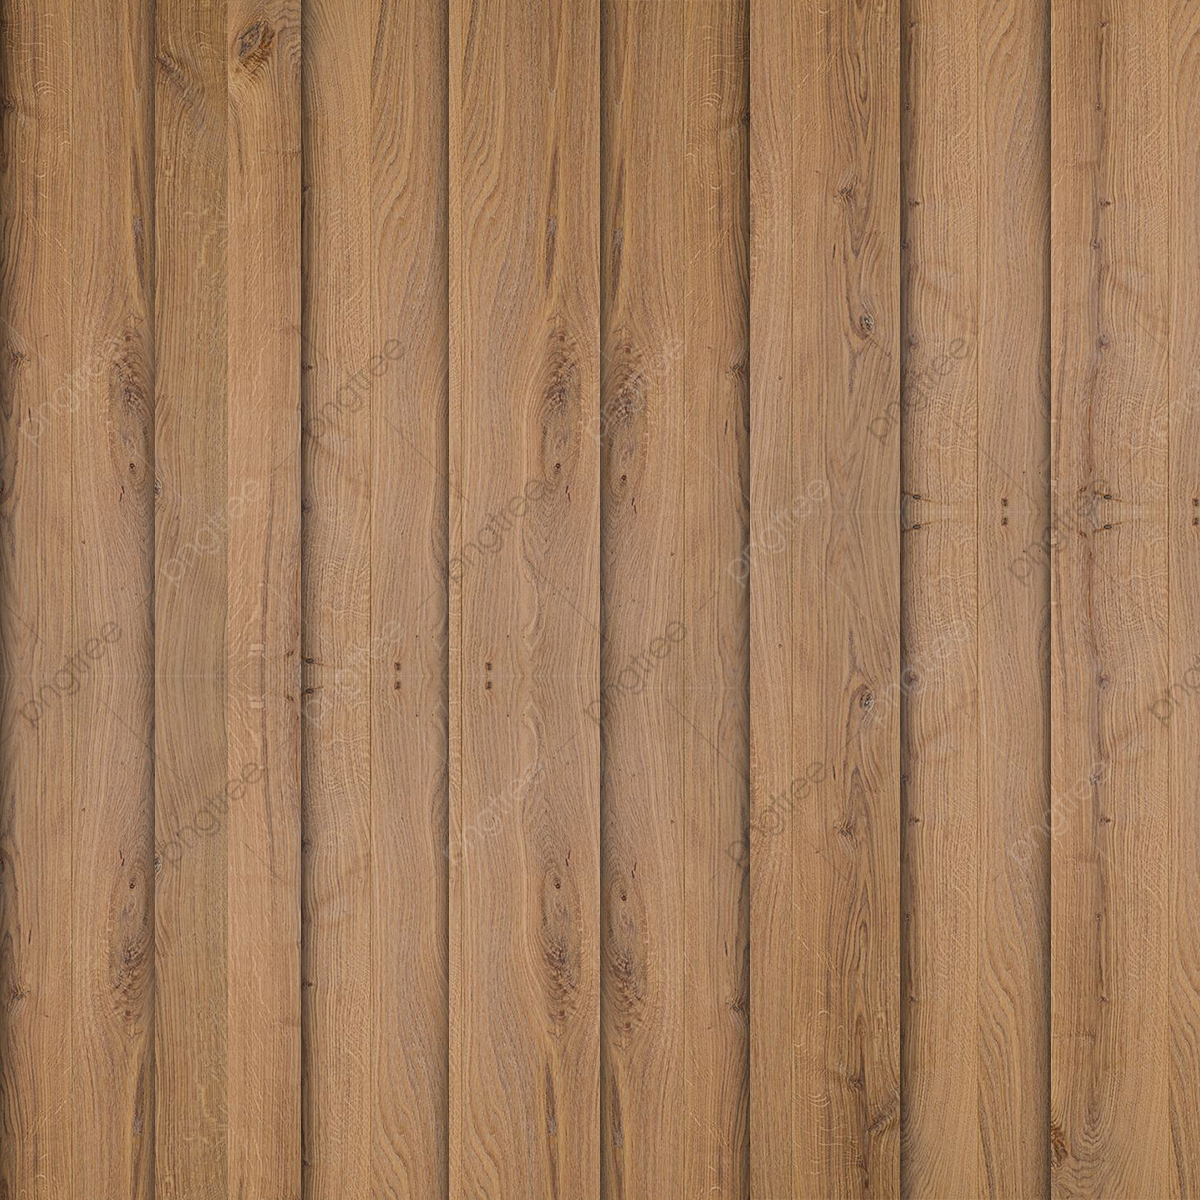 Wood Texture Png, Vector, PSD, And Clipart With